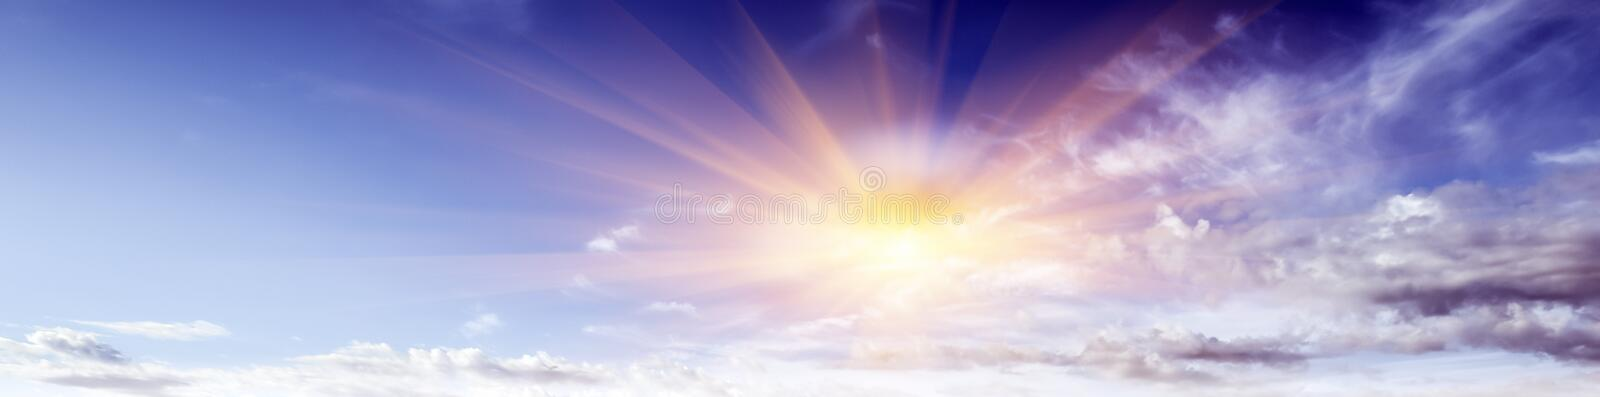 Sky clear beauty atmosphere summer day royalty free stock photography